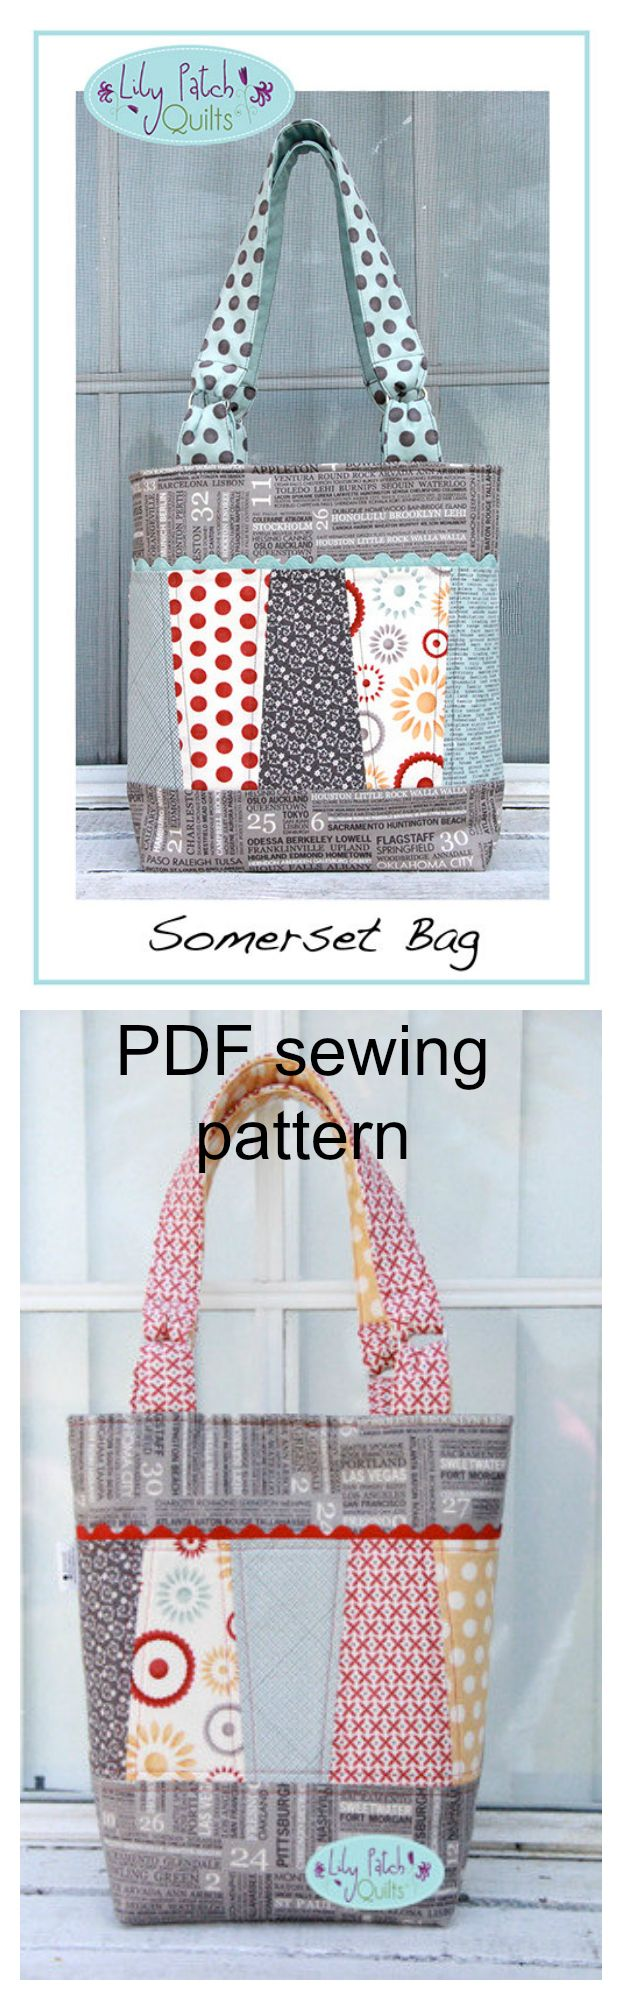 Download this pdf swing pattern for The Somerset Bag.The Somerset bag can be used for shopping, running errands or just about any occasion will do.